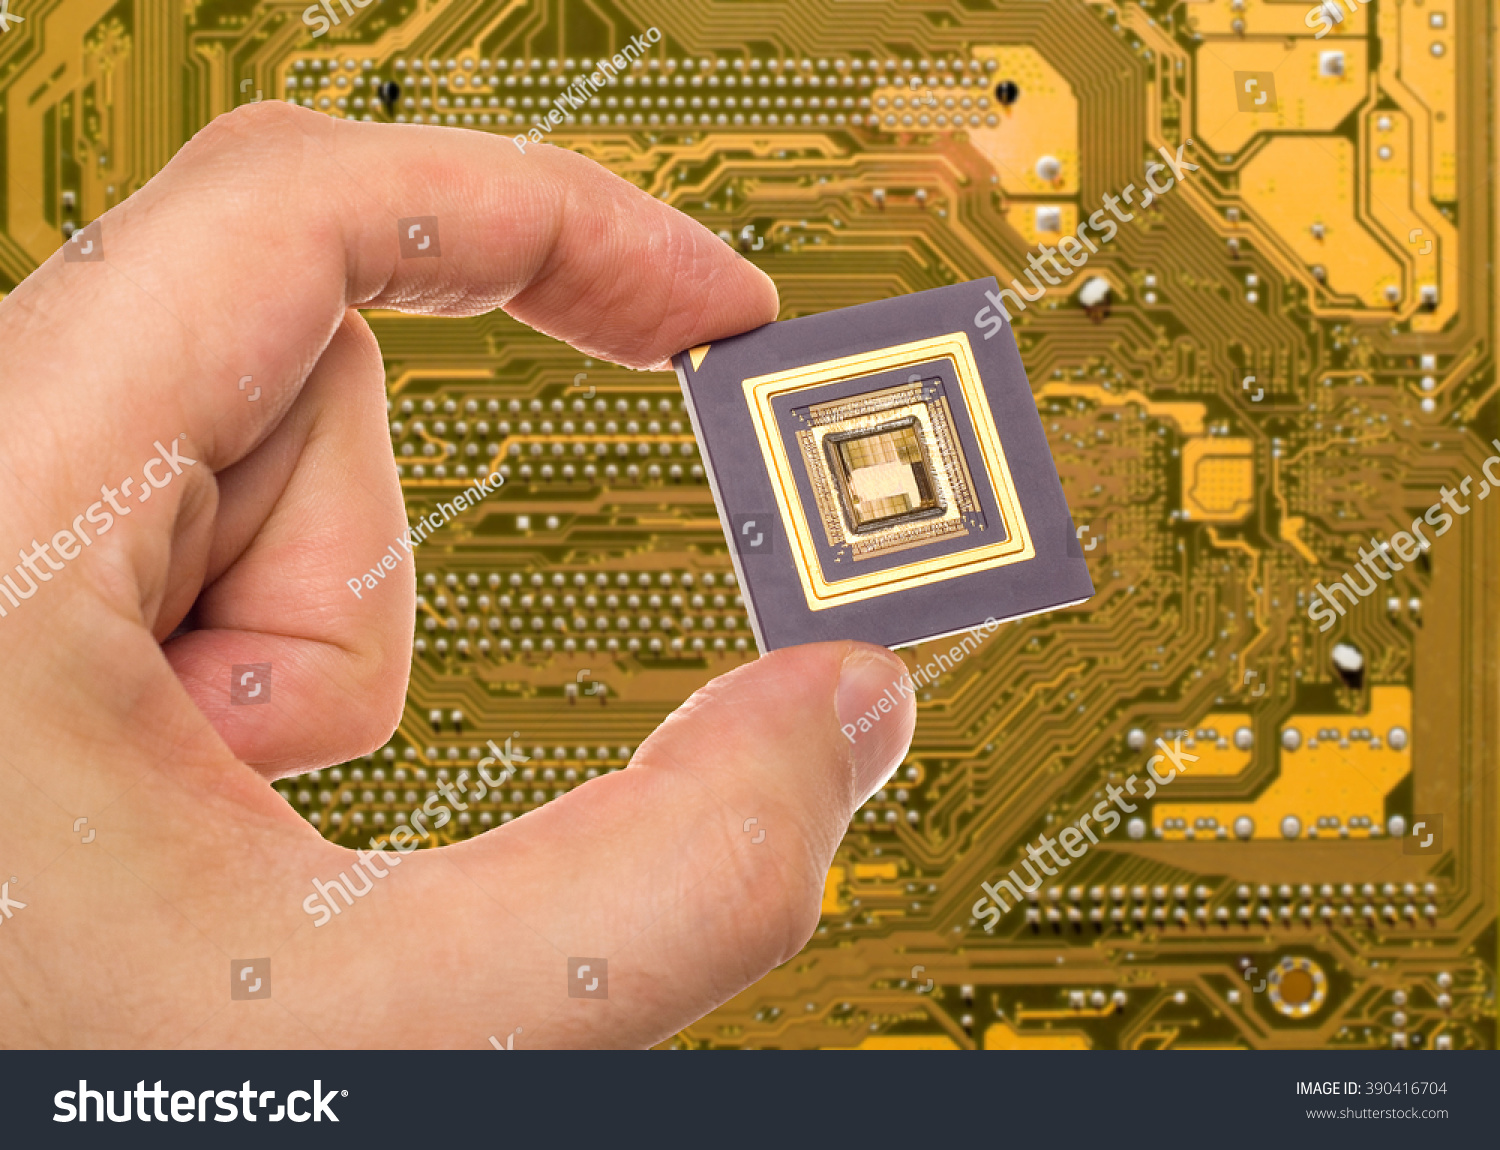 Microprocessor Hand Over Printed Circuit Board Stock Photo Edit Now Photos Images Pictures Shutterstock In